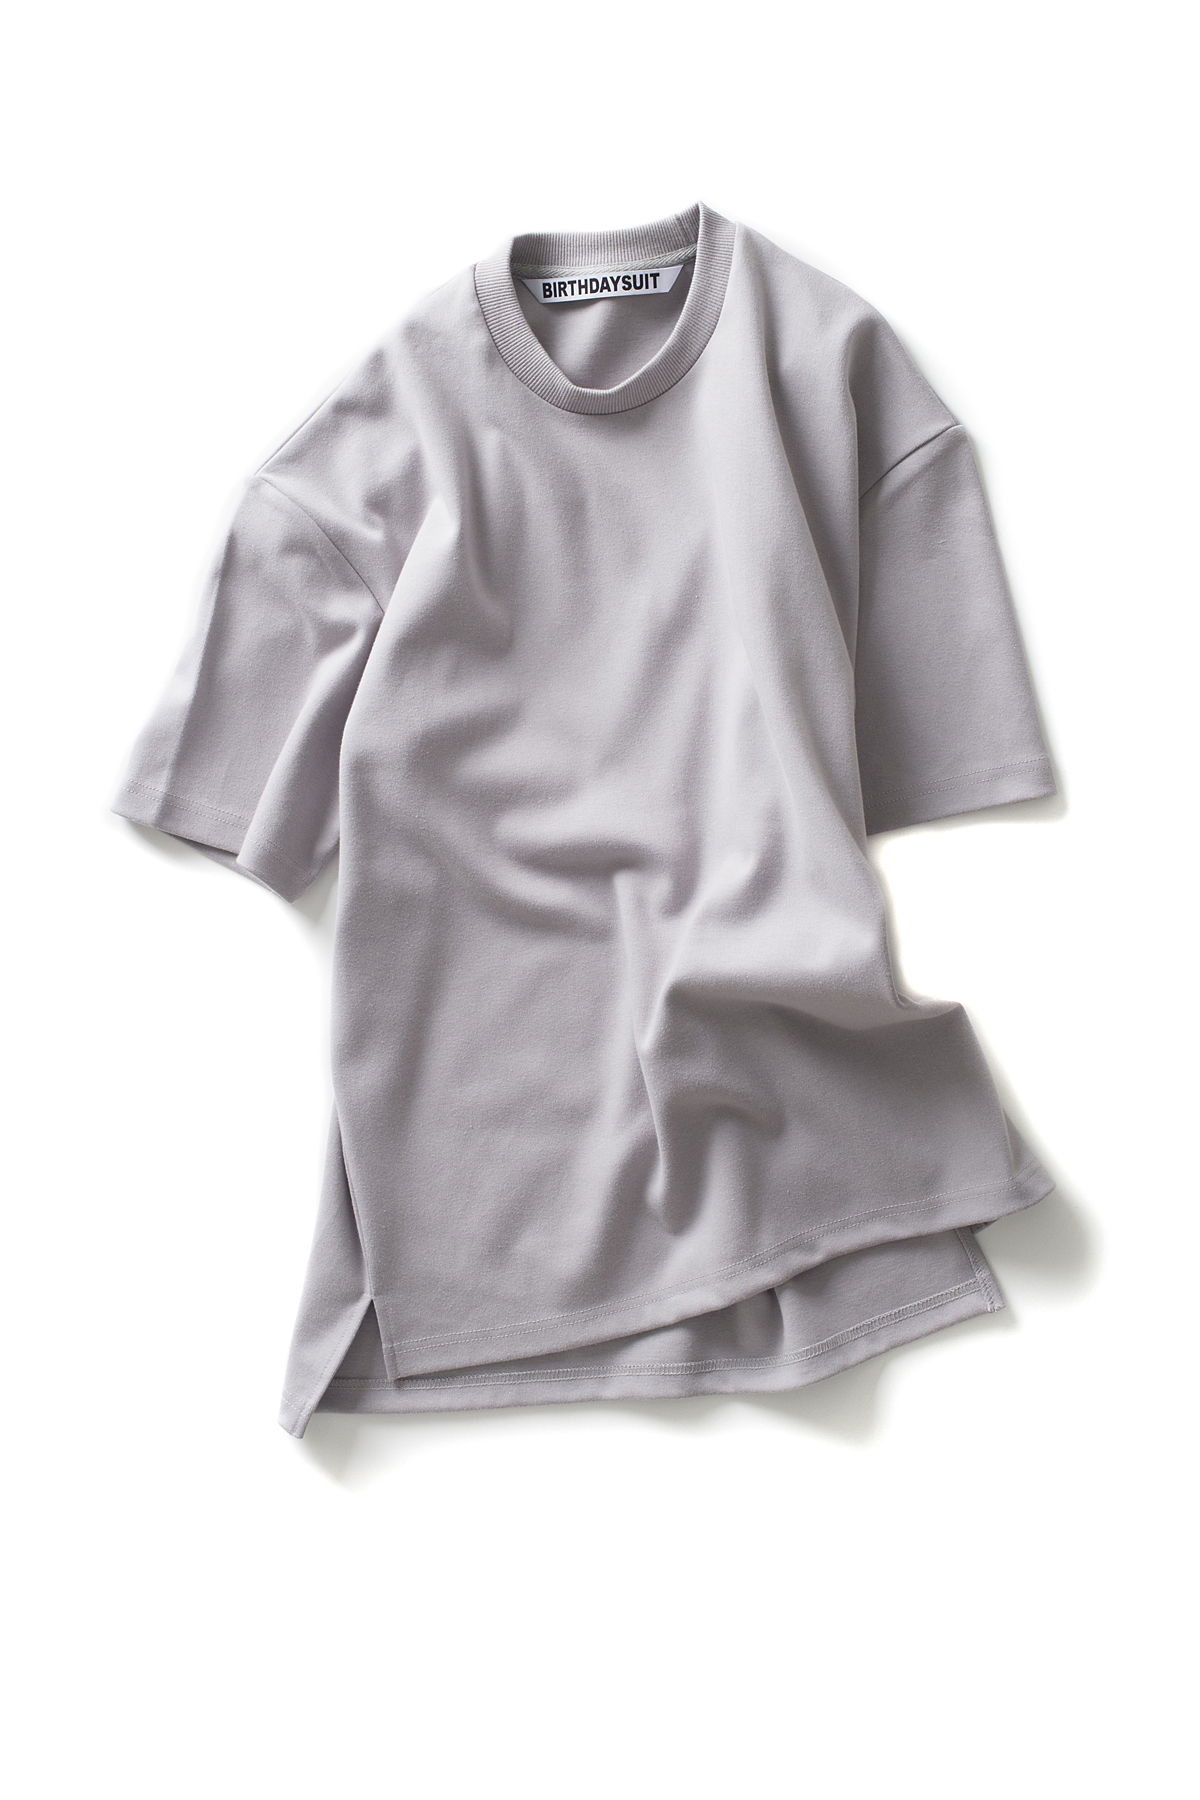 BIRTHDAYSUIT : Oversized T-Shirts (Grey)